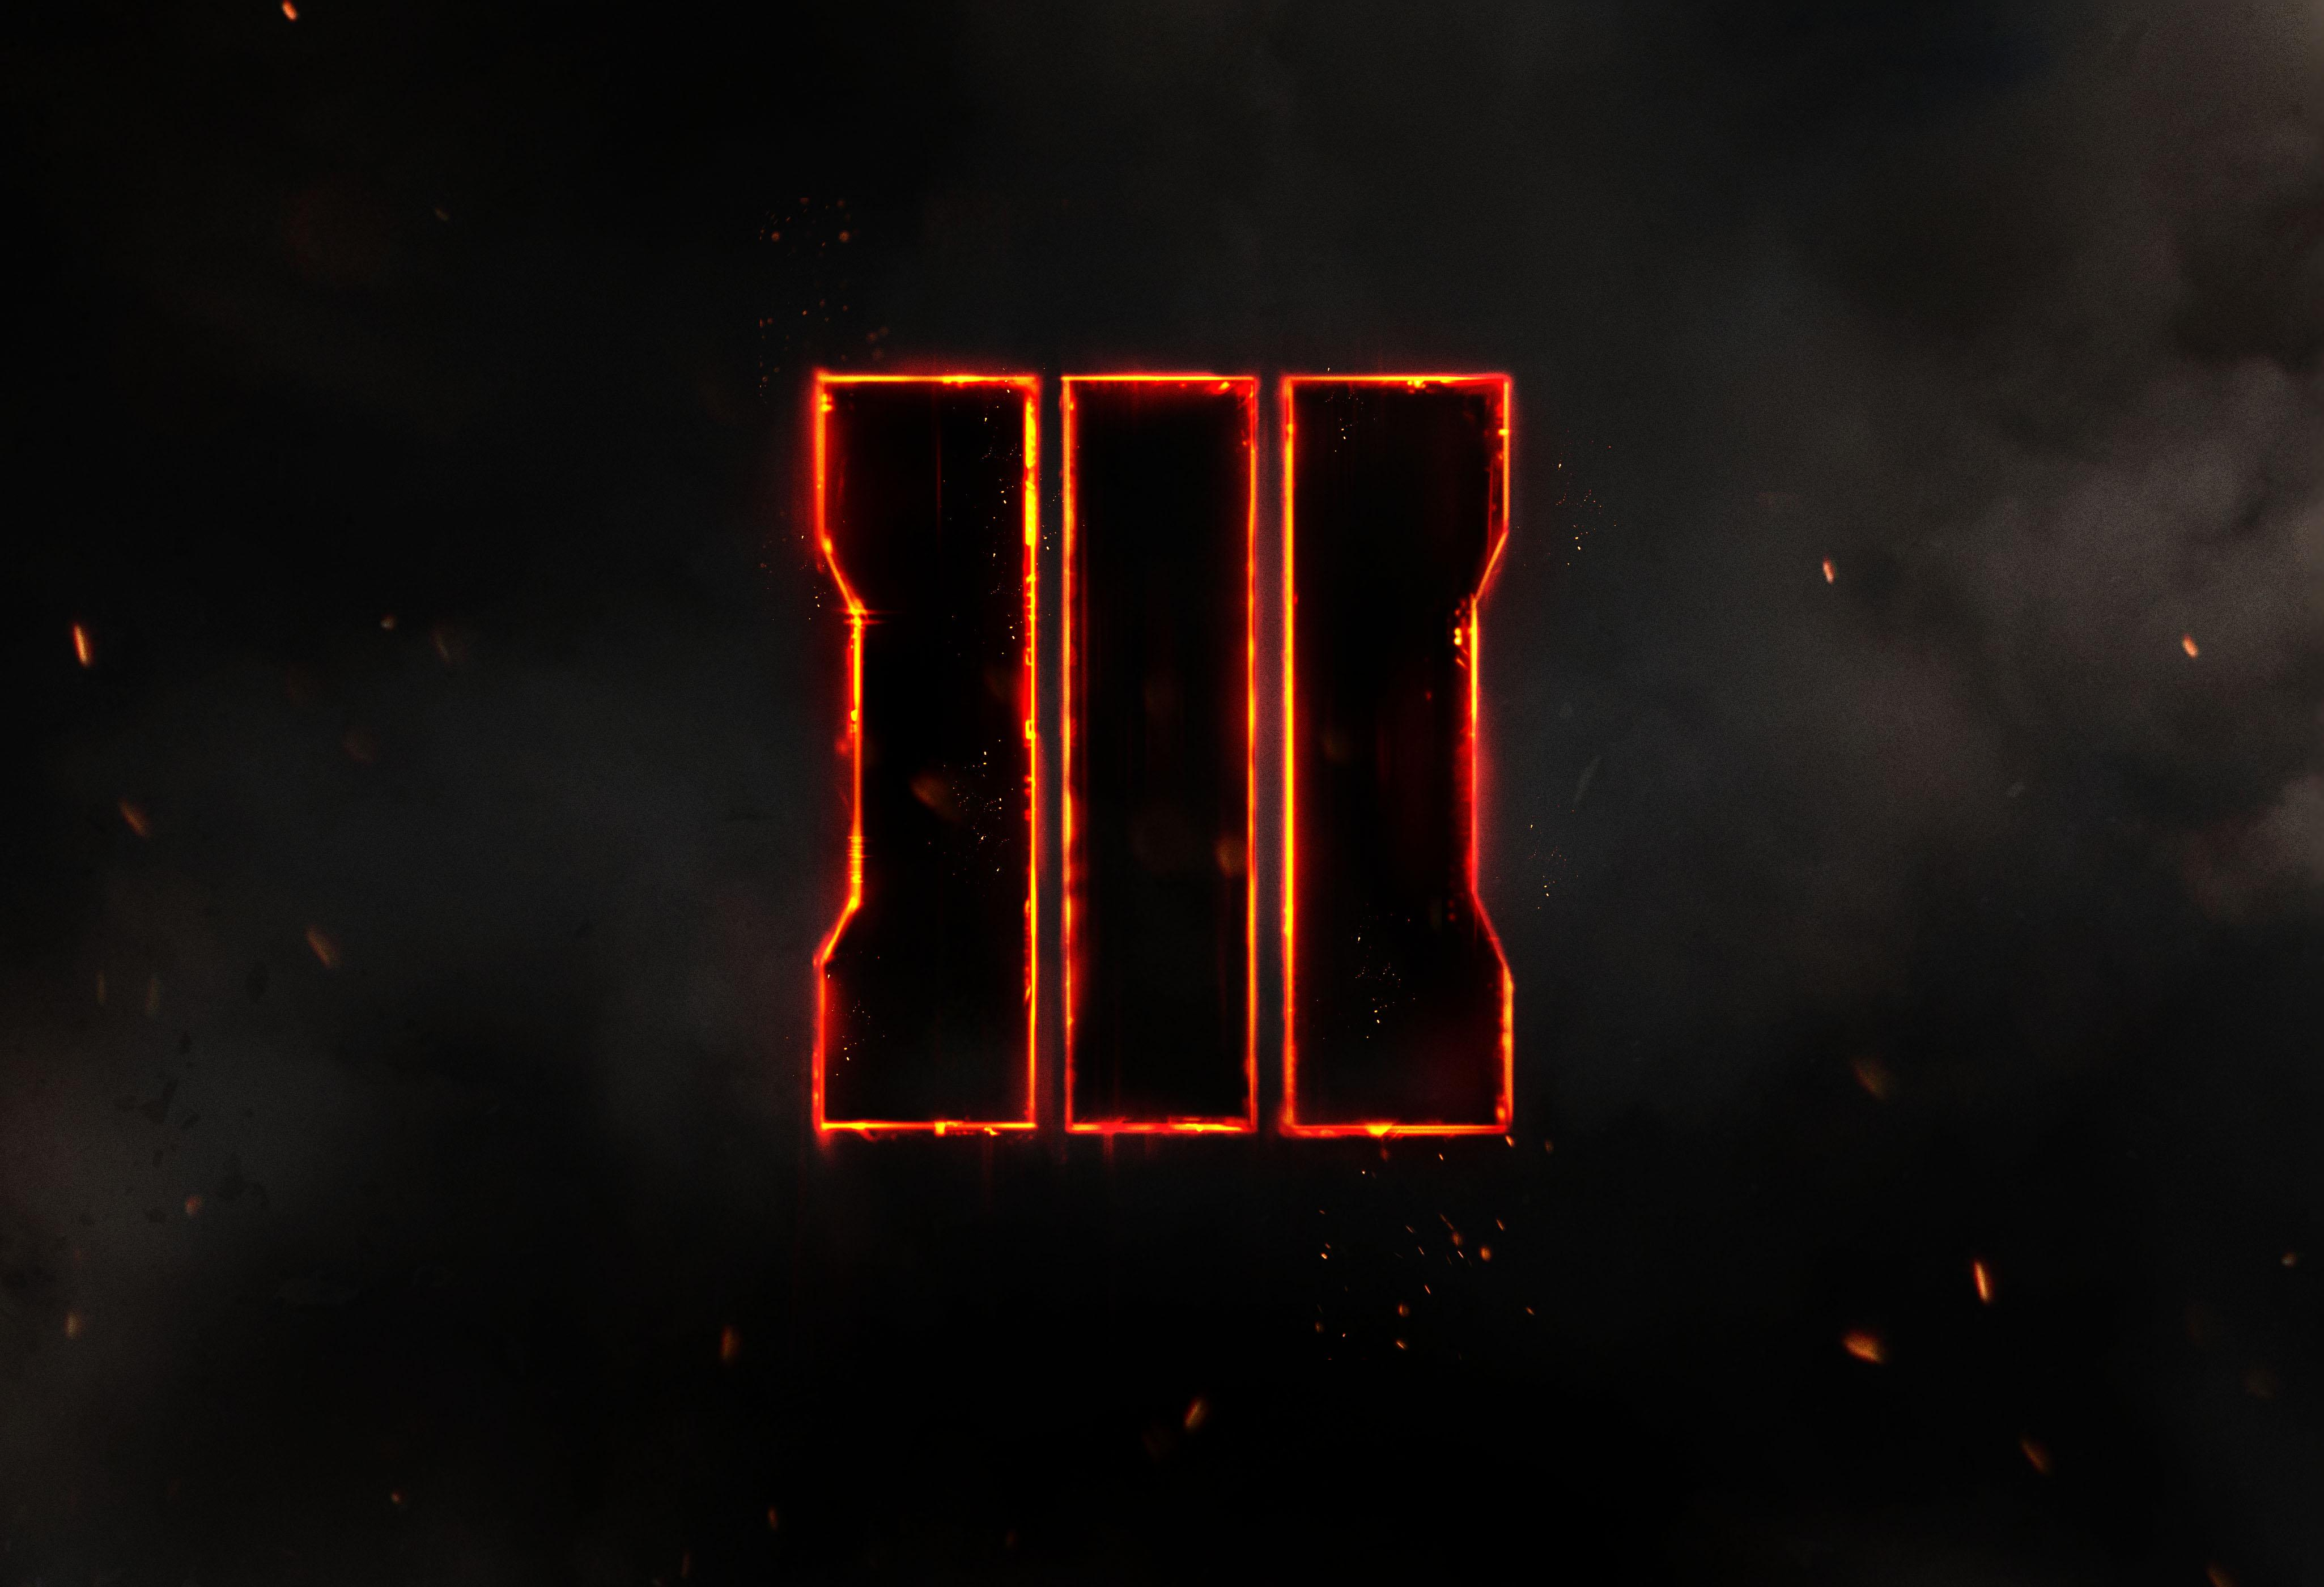 Call Of Duty Bo3 Wallpapers: Call Of Duty: Black Ops 3 HD Wallpapers Free Download